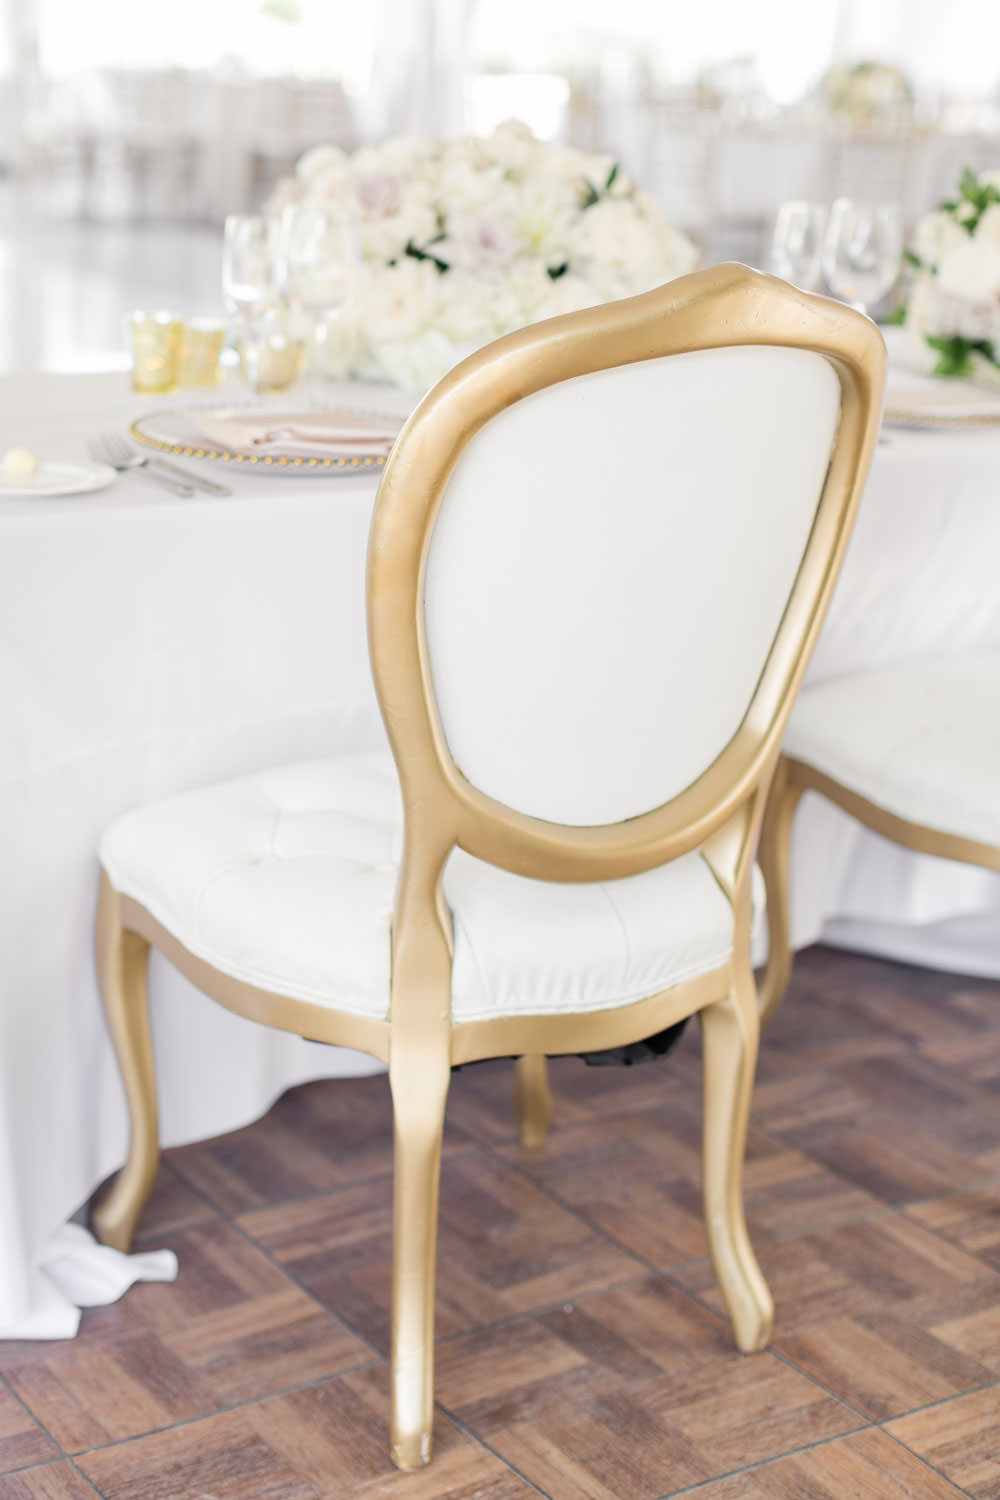 White tufted chair with gold, Cavin Elizabeth Photography